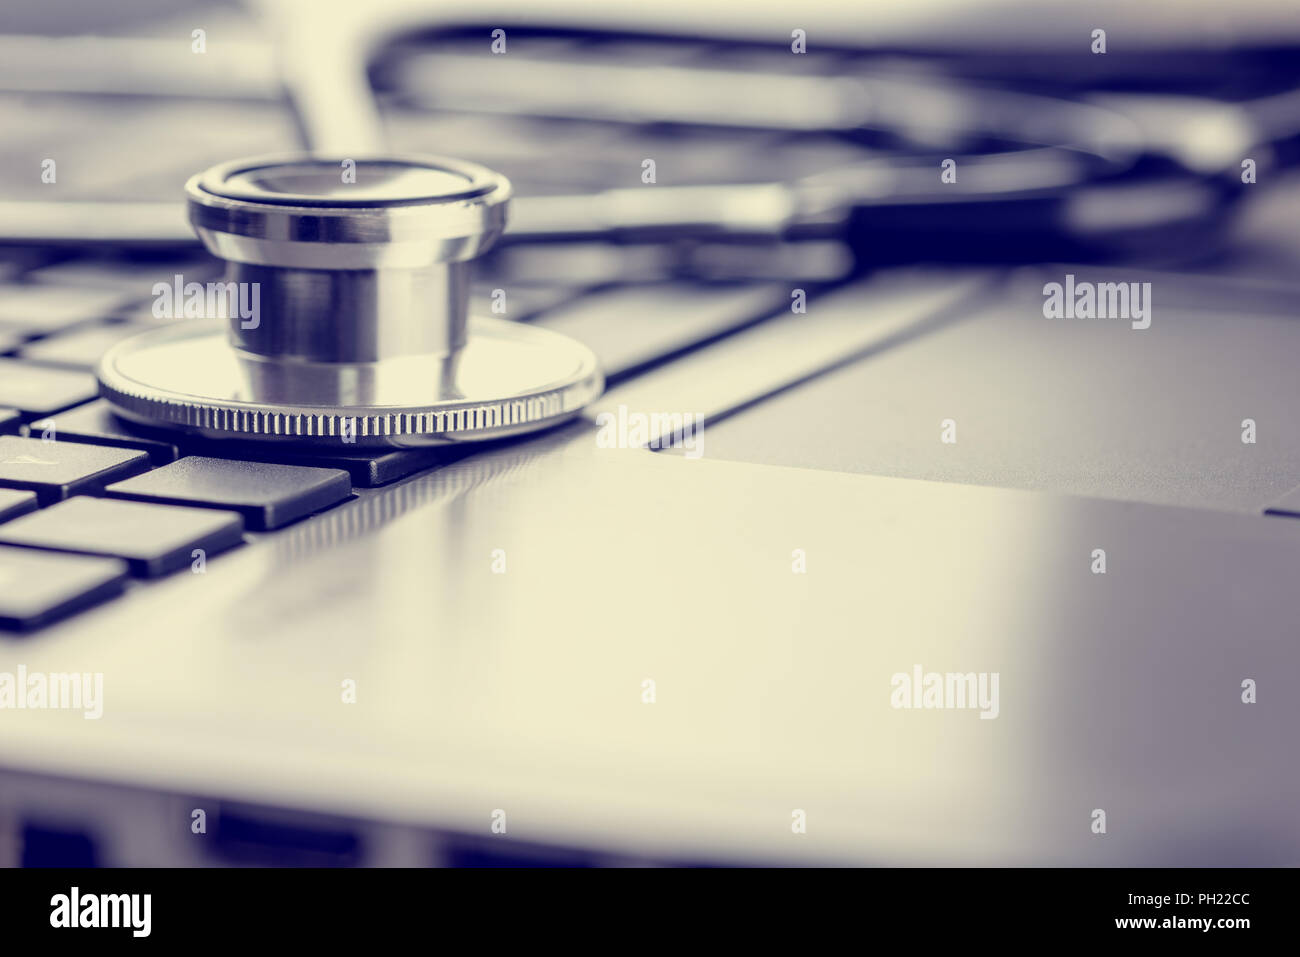 Closeup View Of A Stethoscope Lying On Laptop Keyboard Depicting Online Healthcare And Medical Advice Retro Effect Faded Look